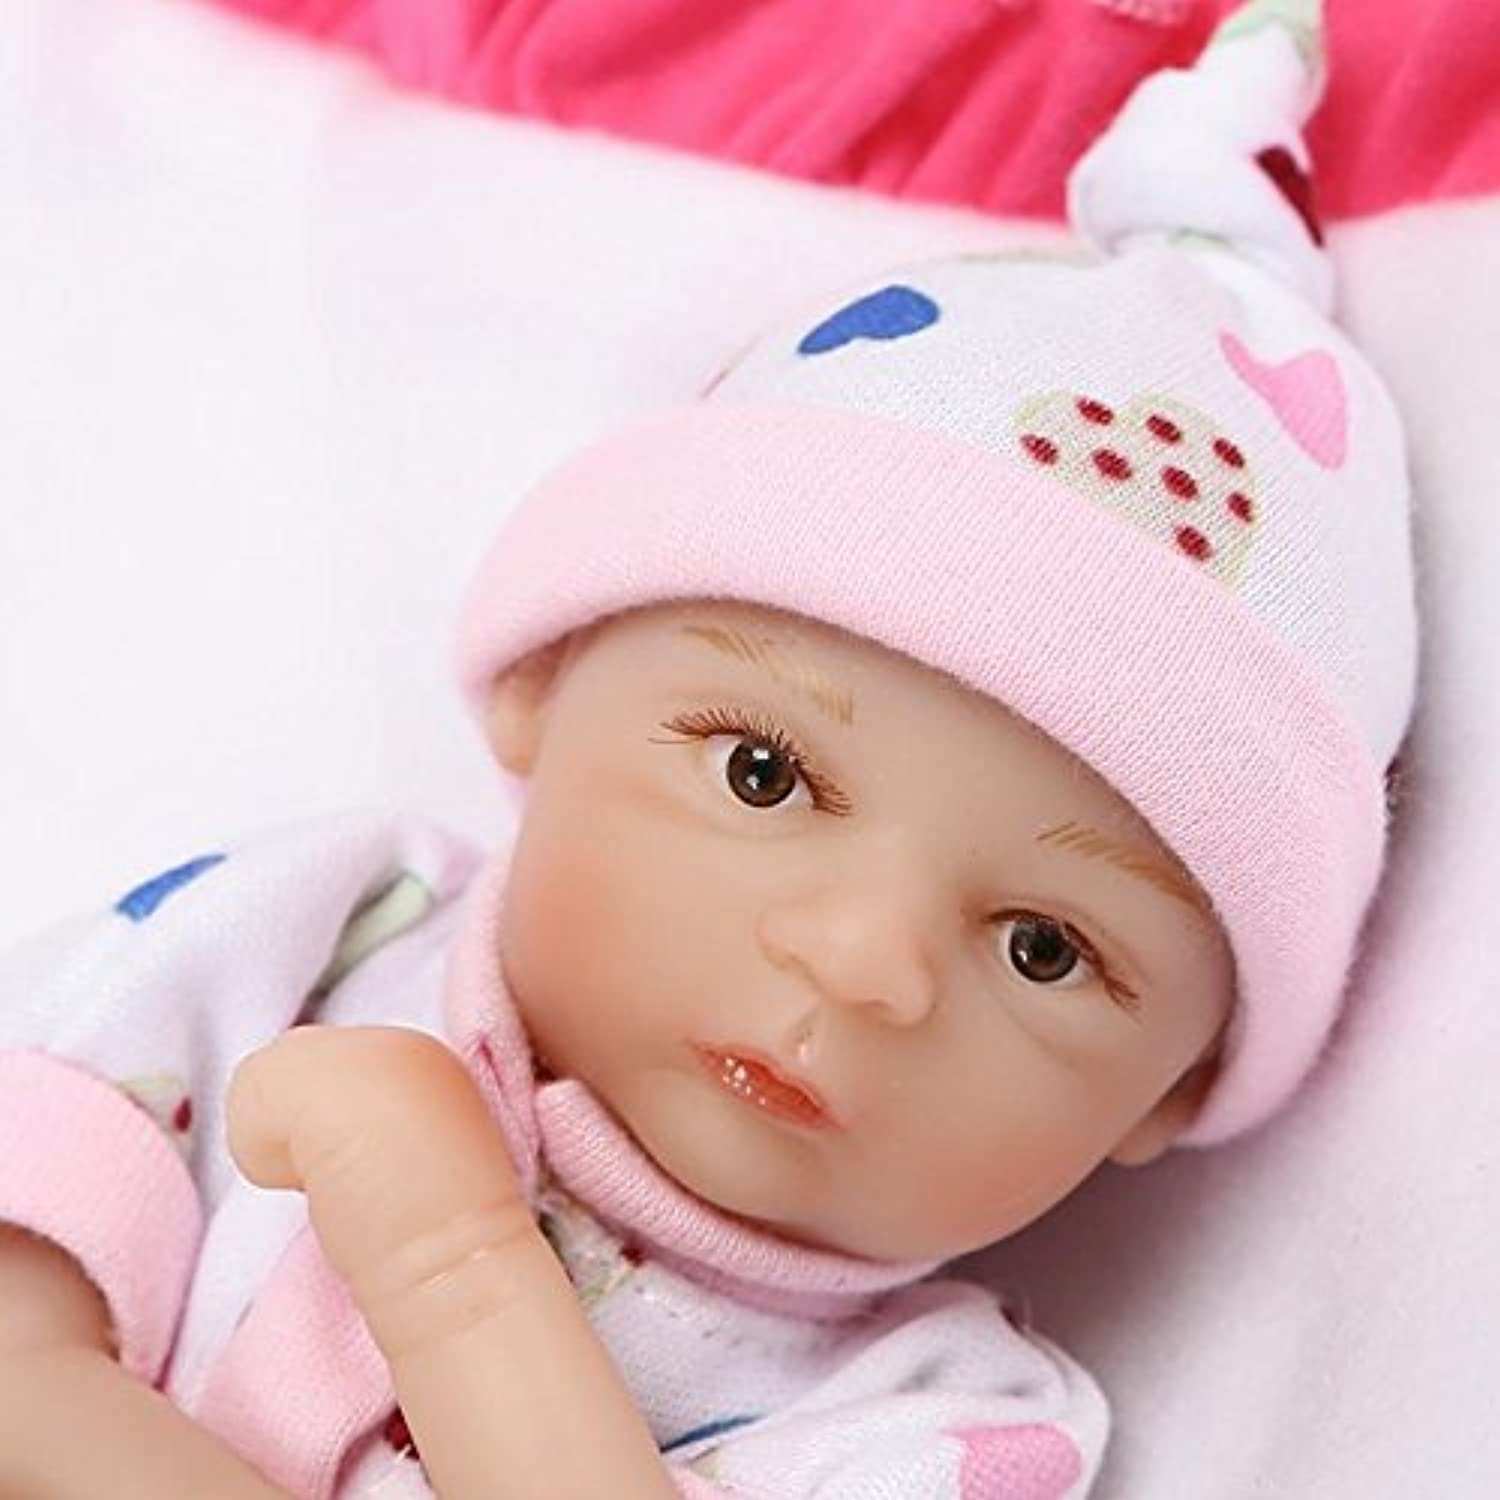 ピンキー20 cm 8インチソフトビニール人形シリコンSo Truely Lifelike LookingリアルNewborn Doll Baby Boy Eyes Opened Reborn Dolls Xmasギフト